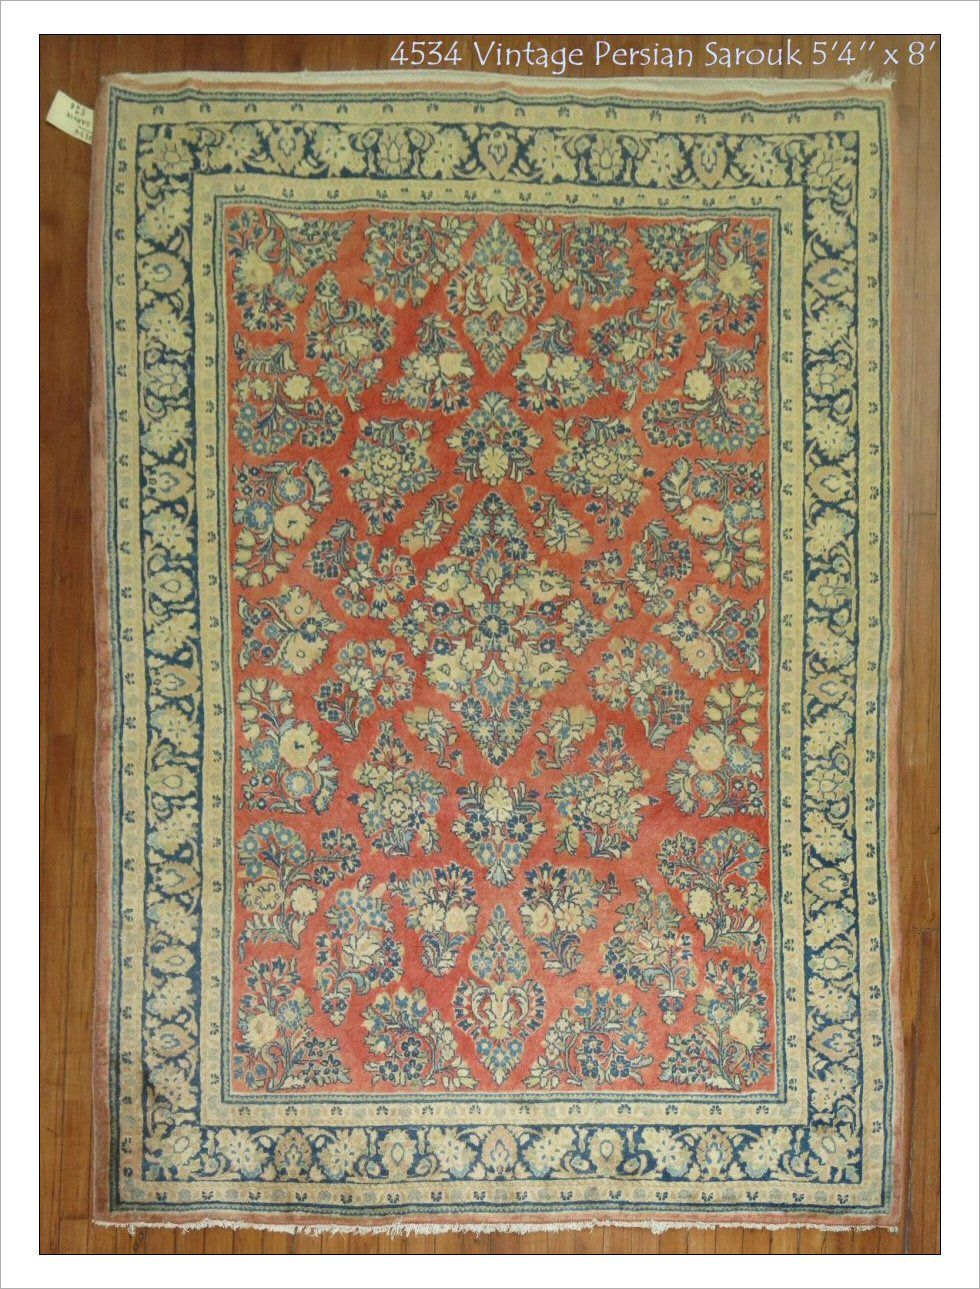 Saruck Rug Number 4534 Size 5 4 X 8 Rugs R